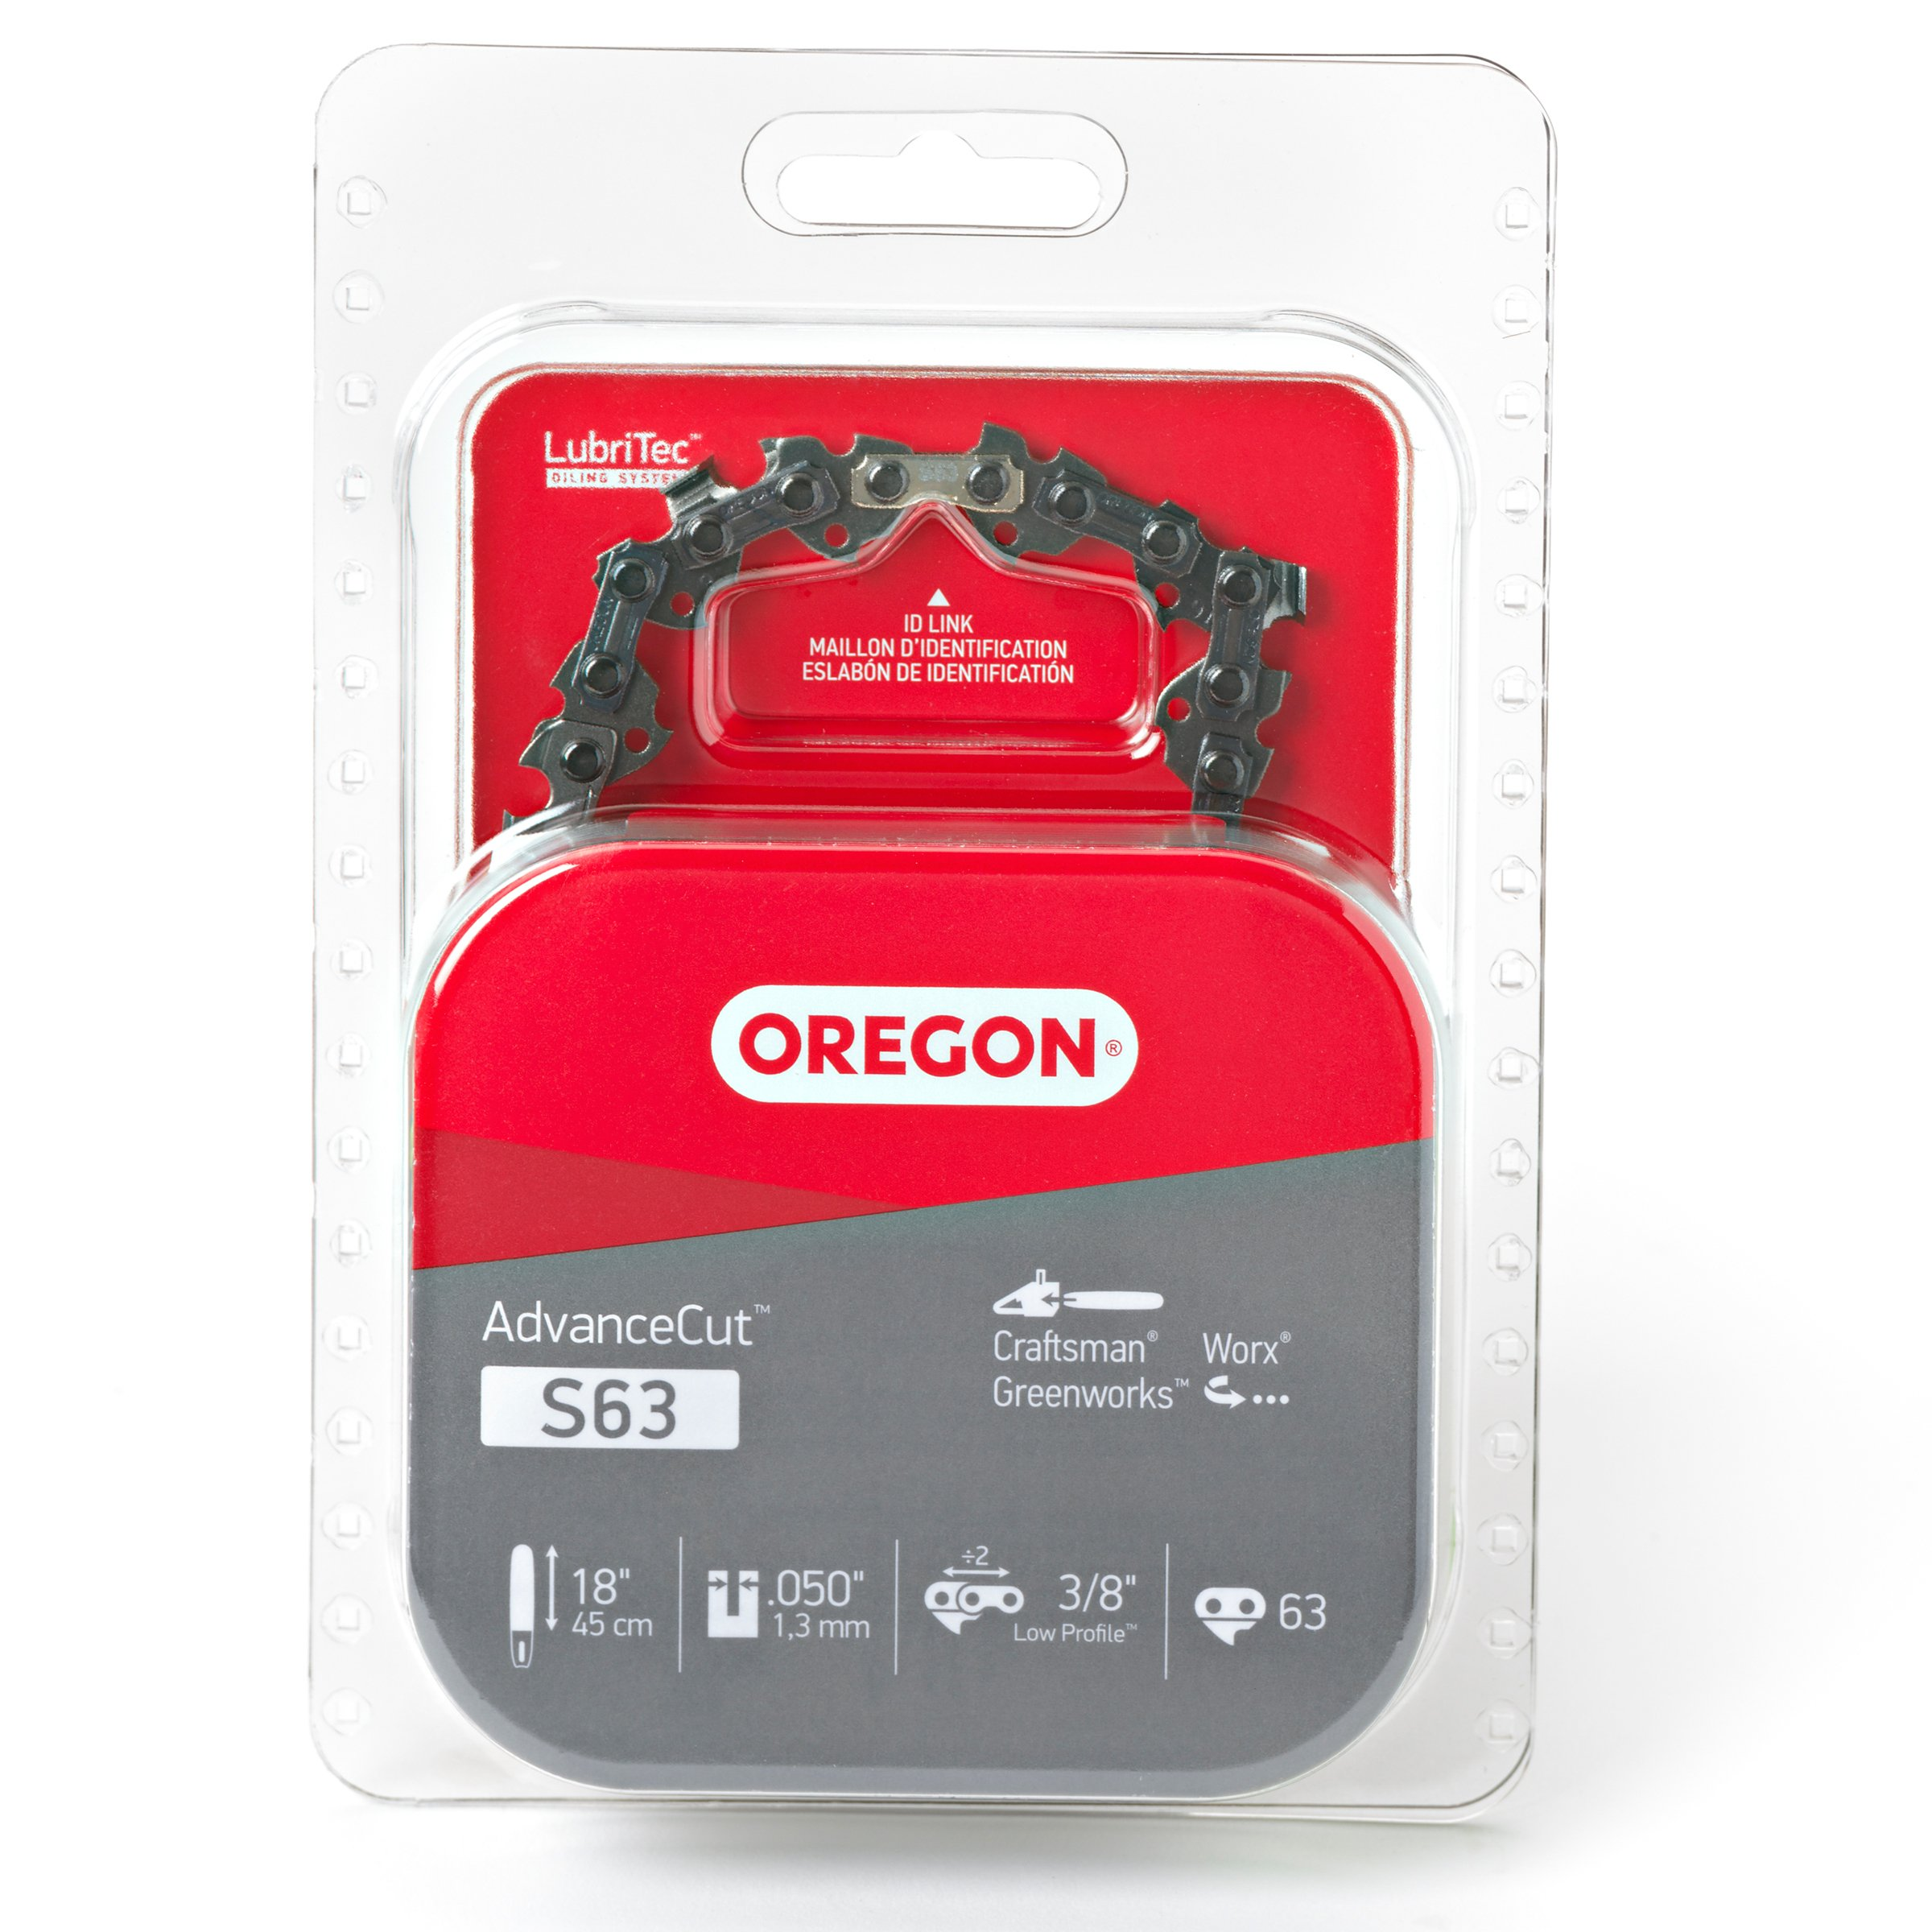 Oregon S63 AdvanceCut 18-Inch Chainsaw Chain, Fits Craftsman, Worx, Greenworks, Grey by Oregon